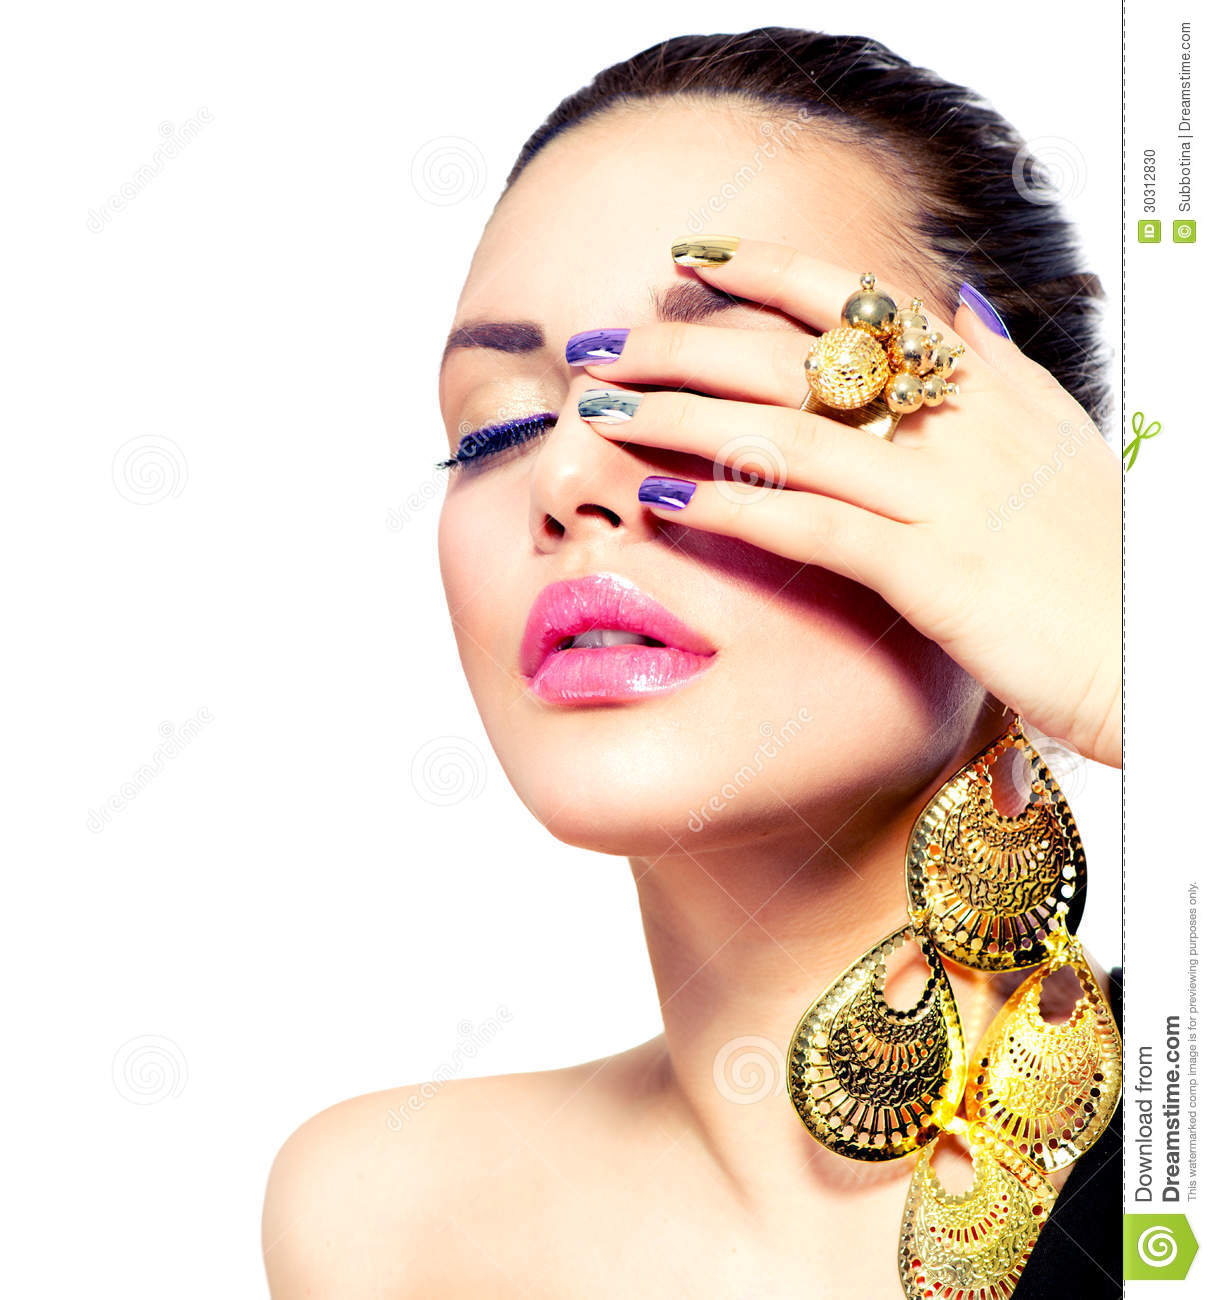 Beauty Makeup And Manicure Stock Photo